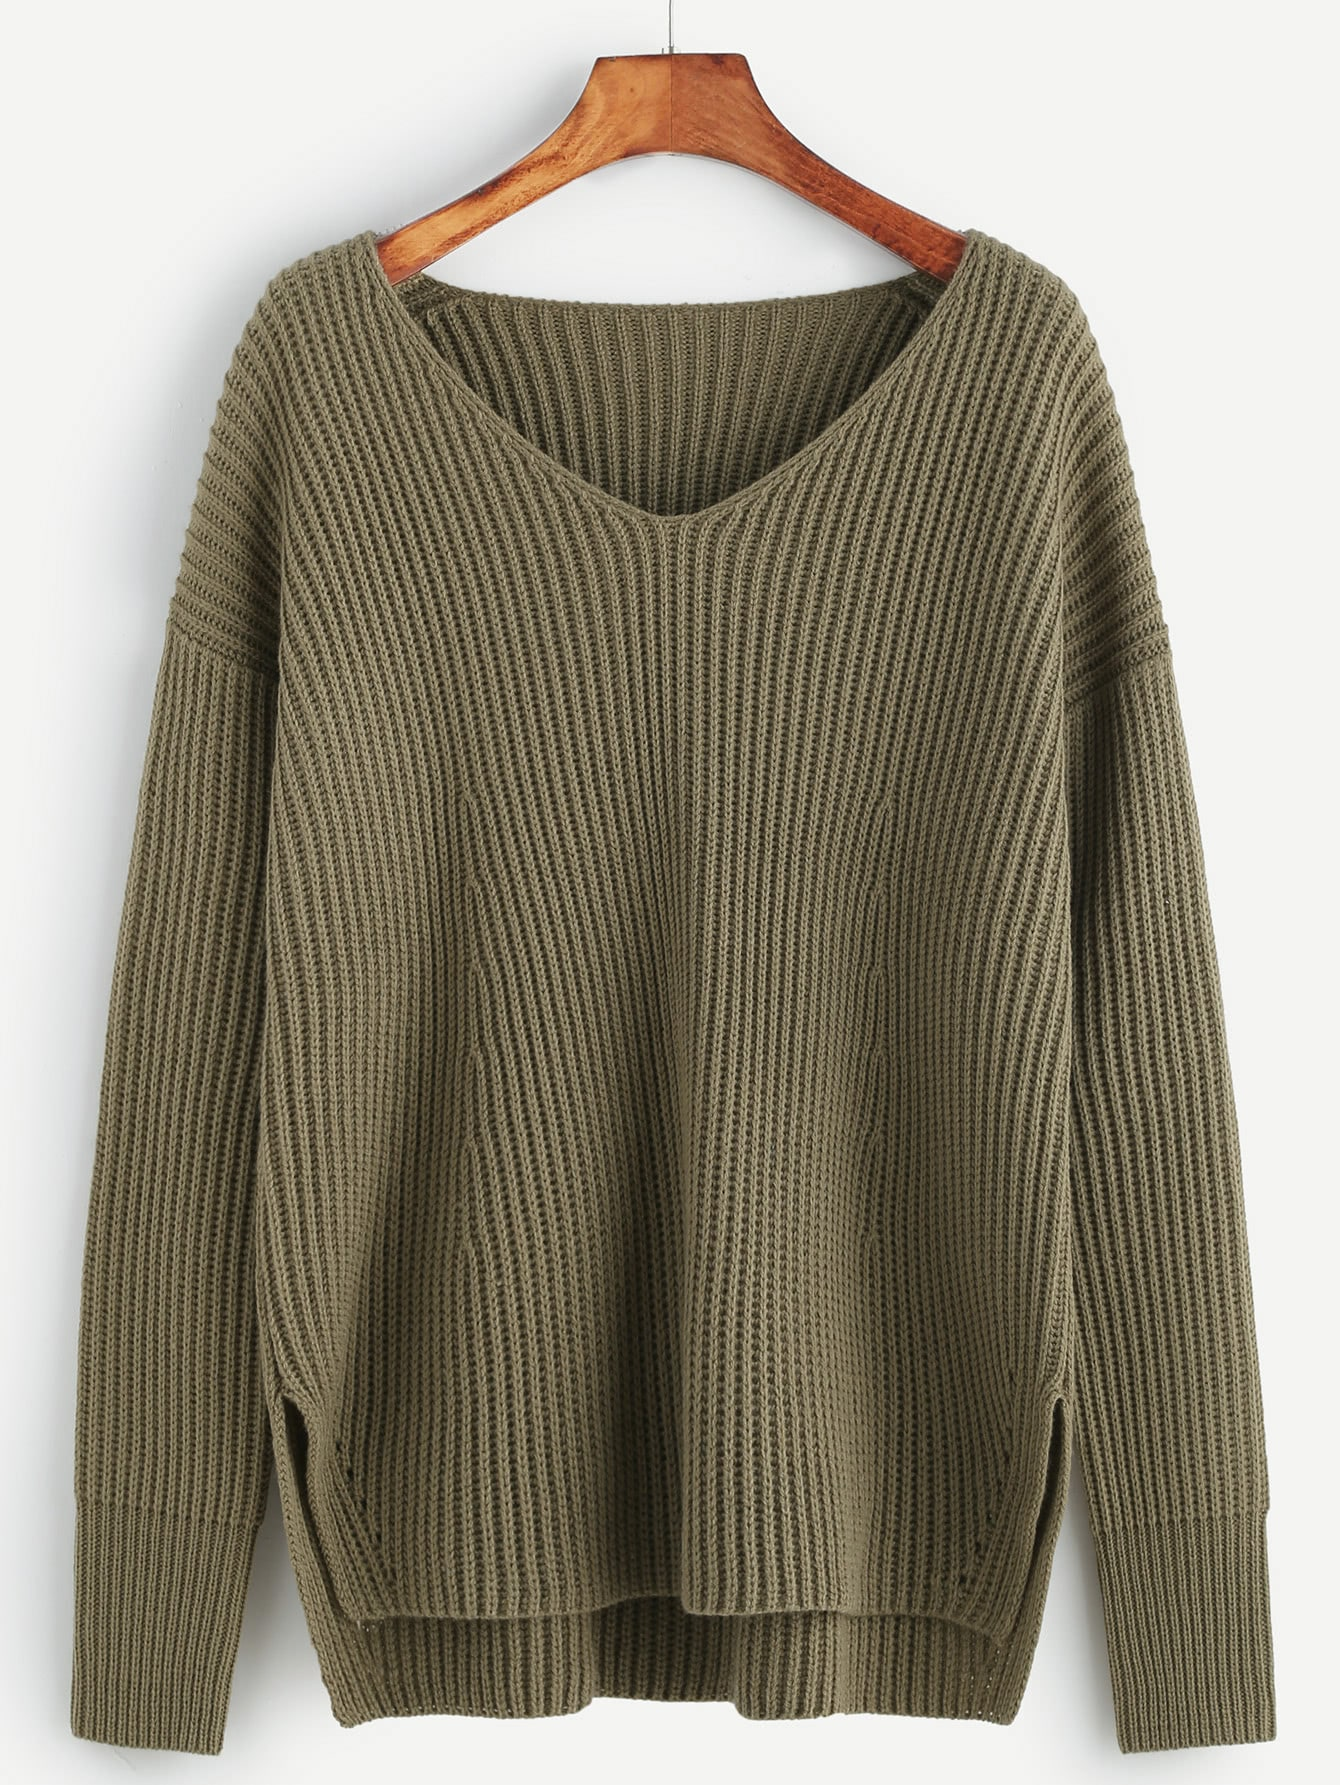 Olive Green Ribbed Knit Slit High Low Sweater sweater161101453